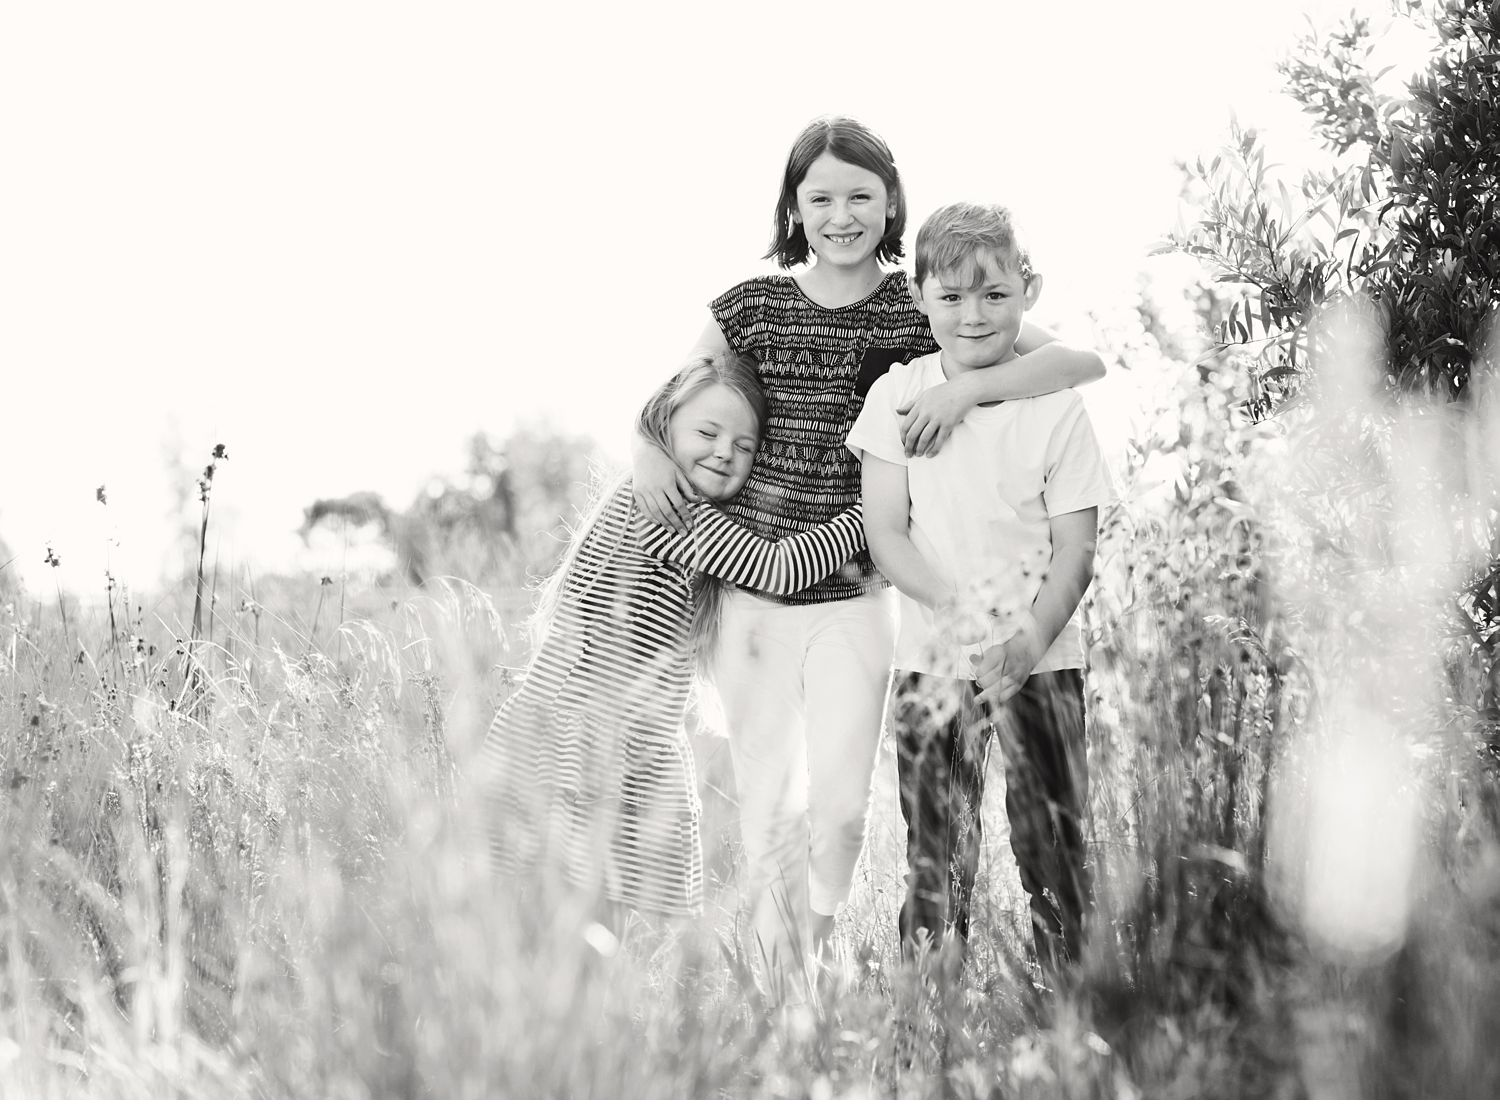 Beautiful-moments-family-photography-berwick-melbourne.jpg